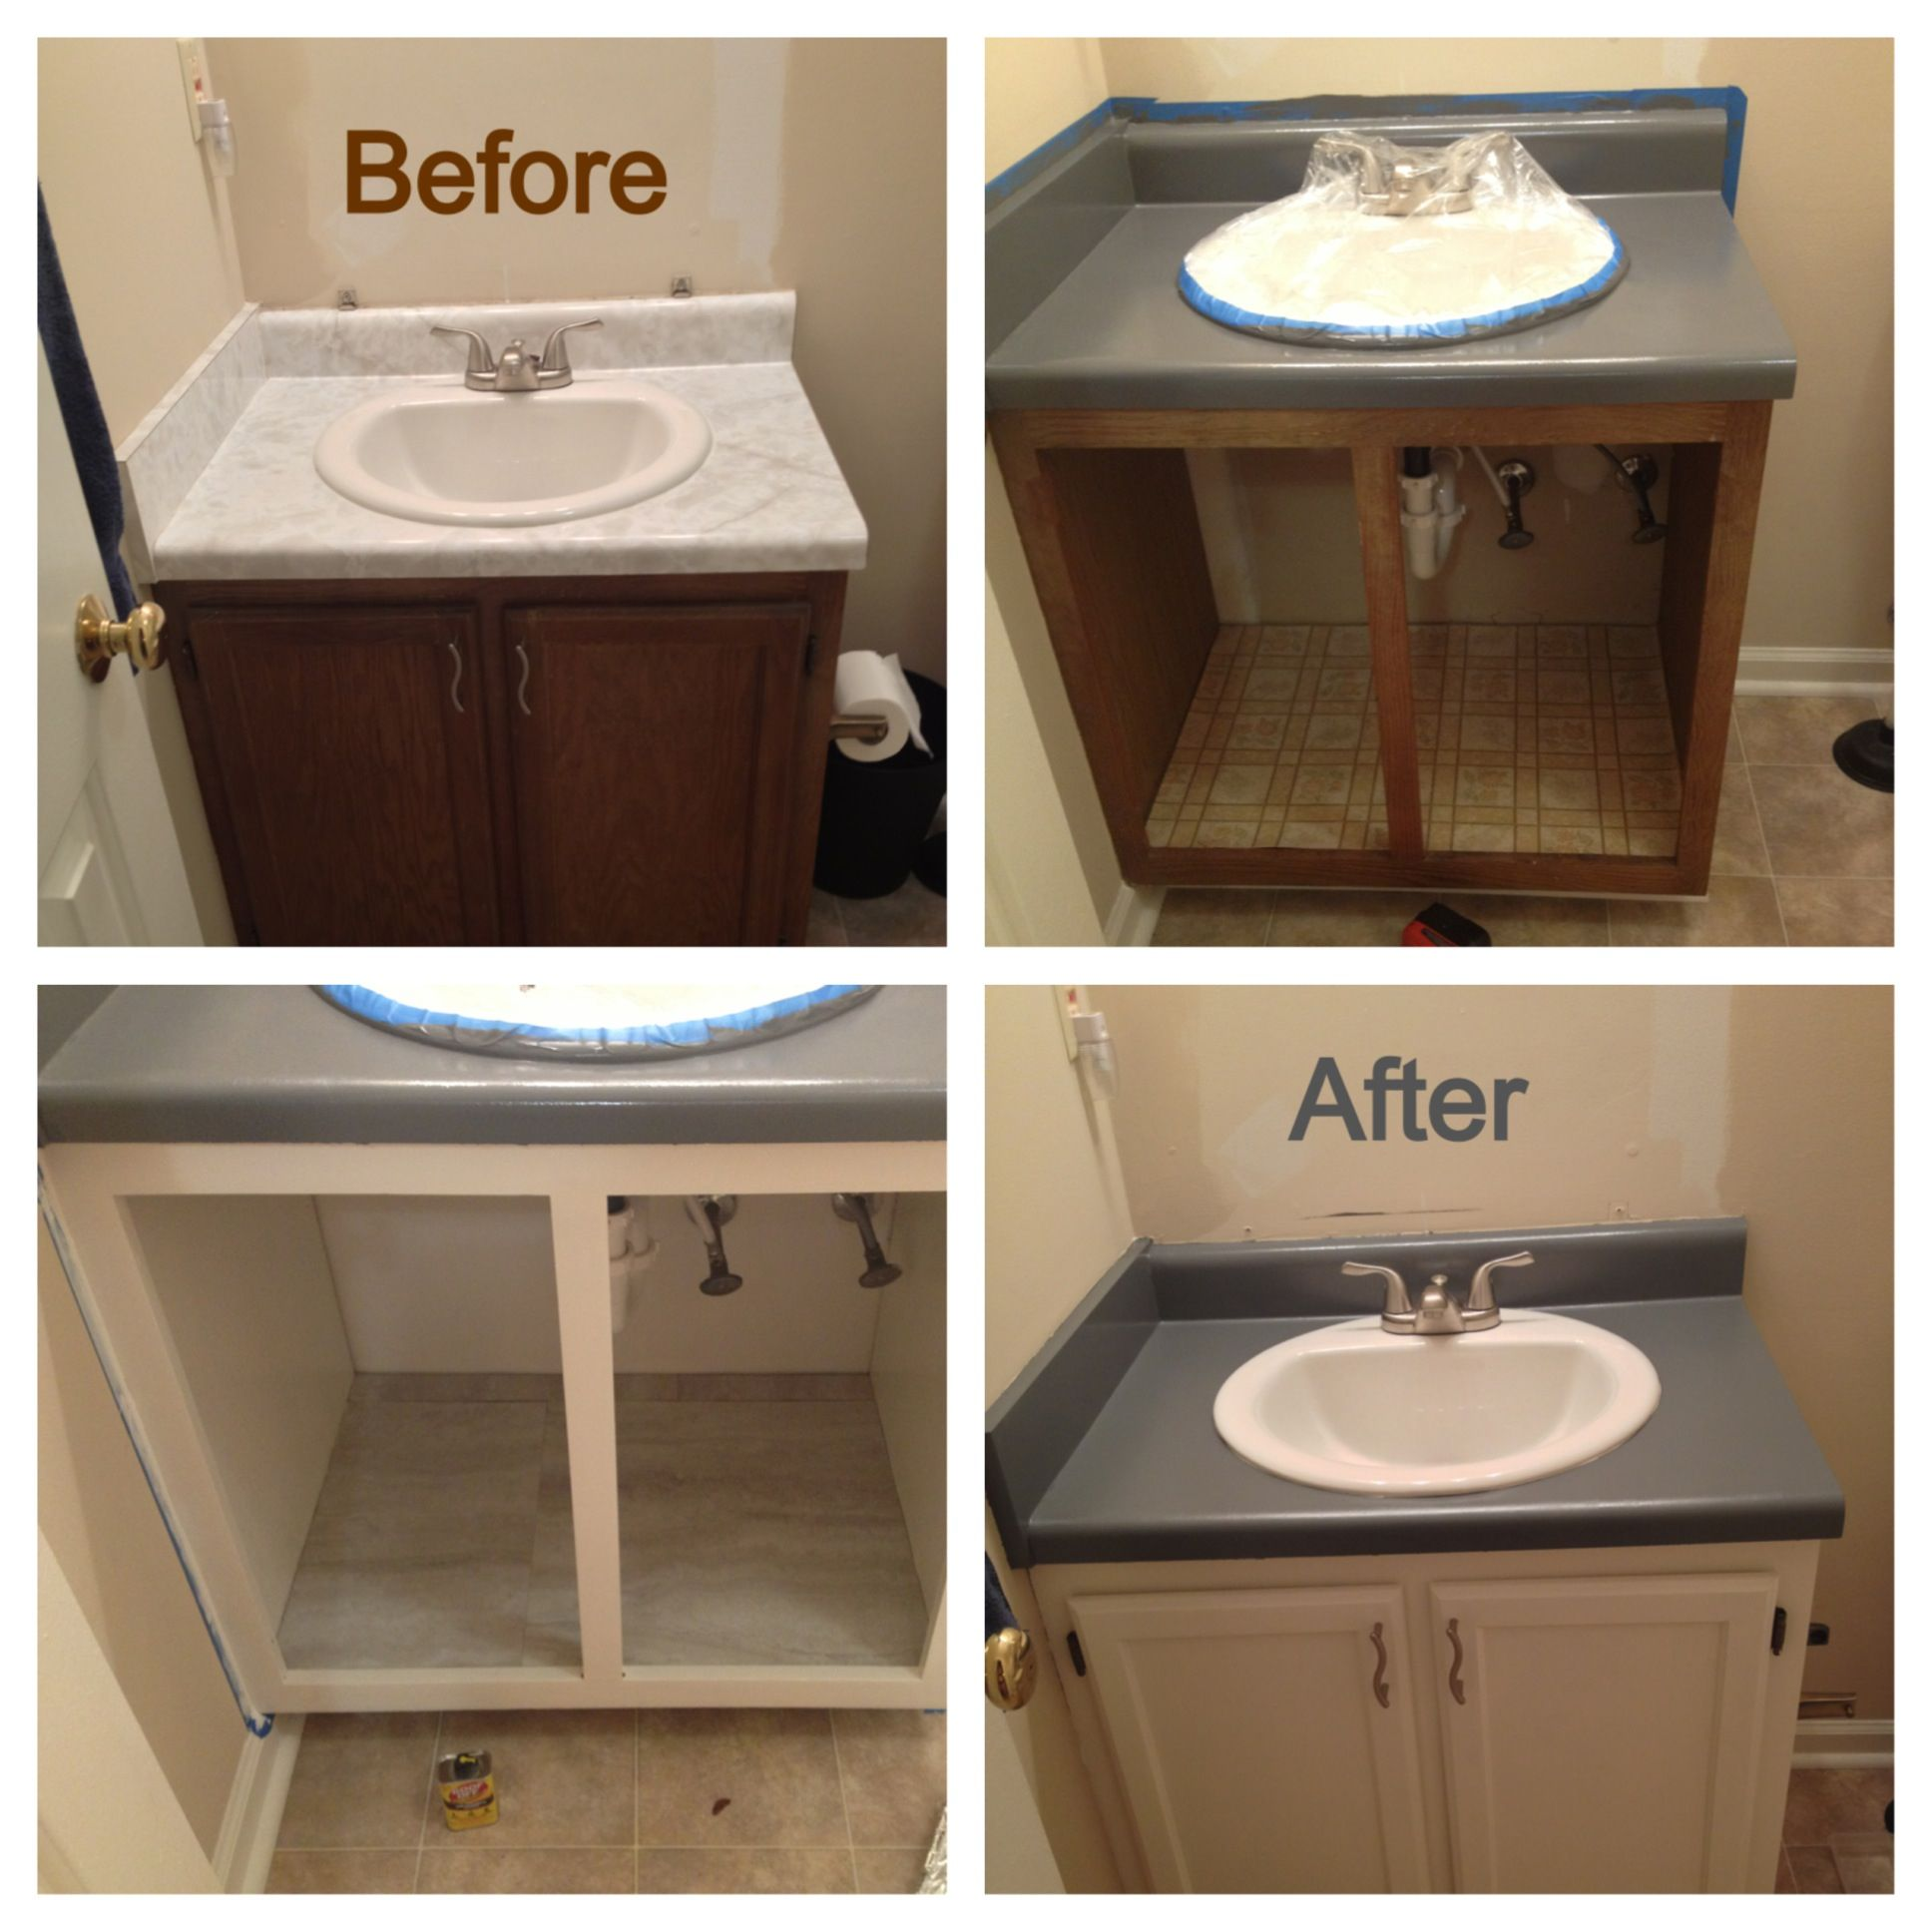 Bathroom Renovation On A Mega Budget! I Used Rustoleum Countertop Paint On My Original Laminate